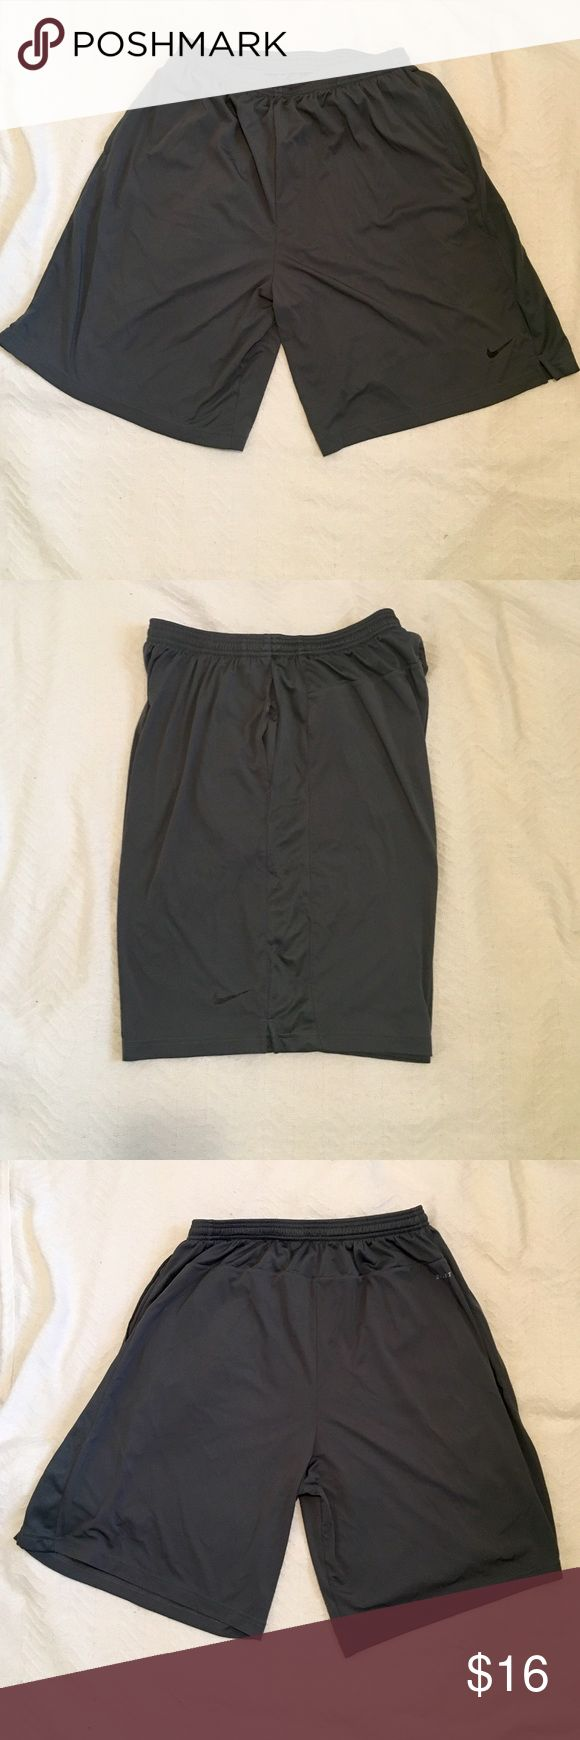 Nike Dri-Fit Mens Shorts These Nike grey Dri-Fit shorts are in excellent used condition. Nike Shorts Athletic